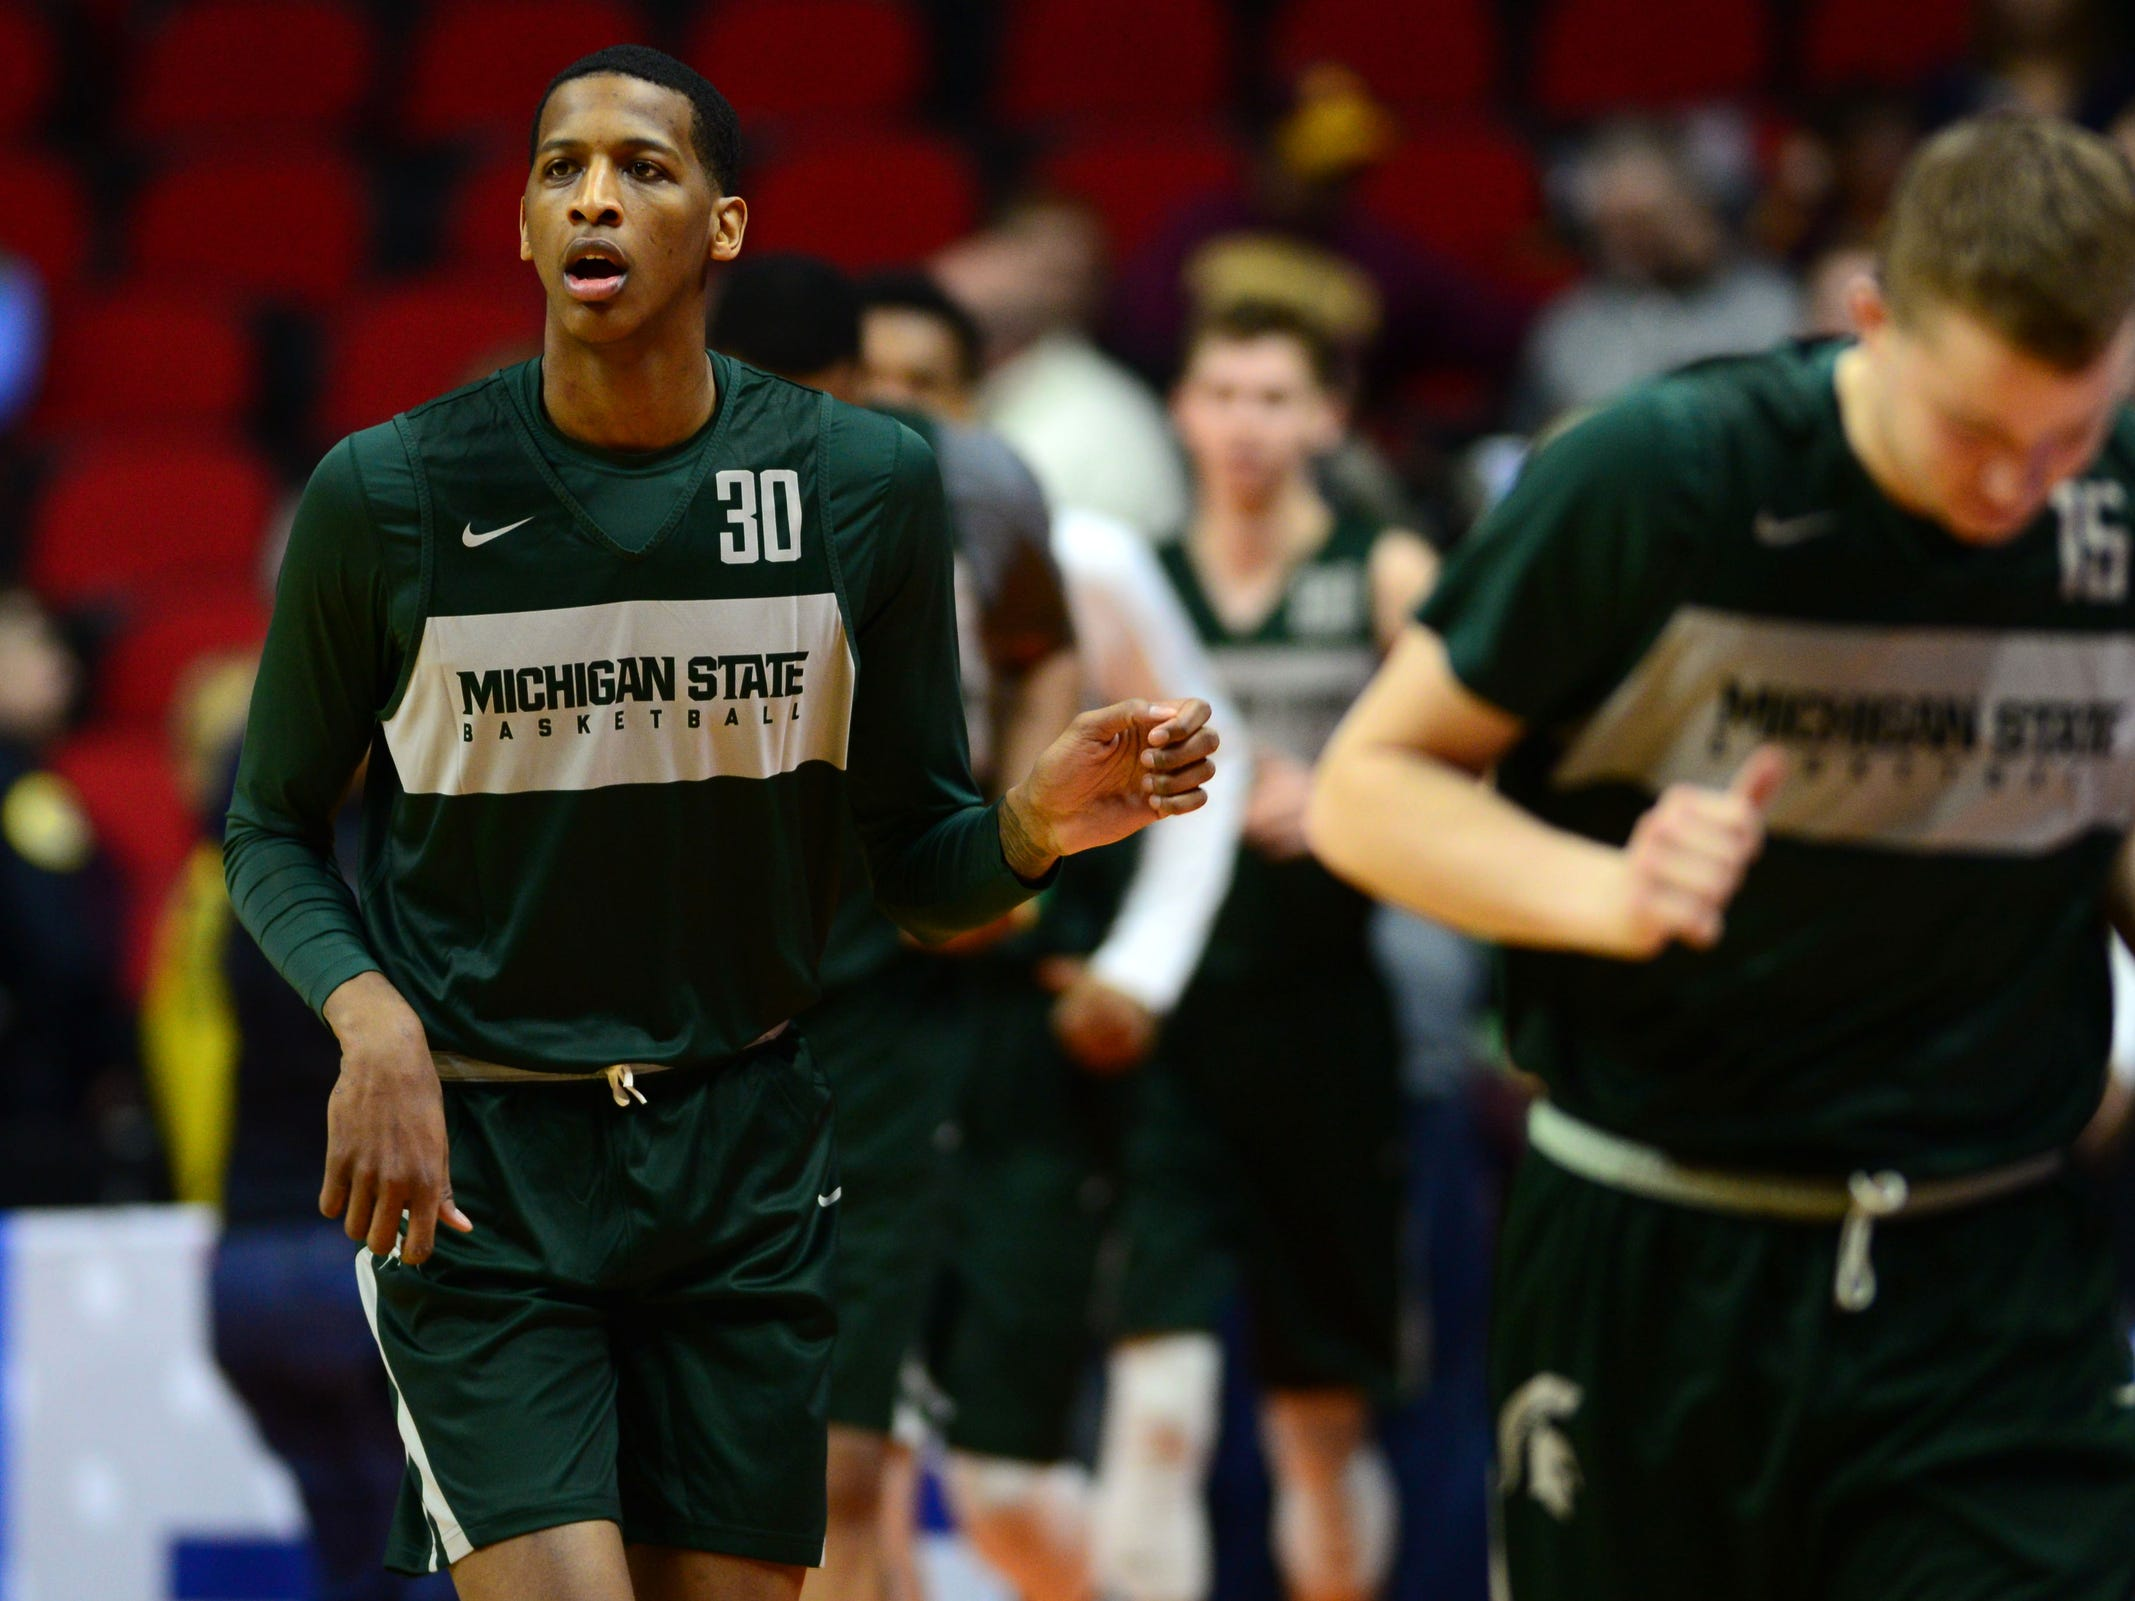 Mar 20, 2019; Des Moines, IA, USA; Michigan State Spartans forward Marcus Bingham Jr. (30) during practice before the first round of the 2019 NCAA Tournament at Wells Fargo Arena. Mandatory Credit: Steven Branscombe-USA TODAY Sports